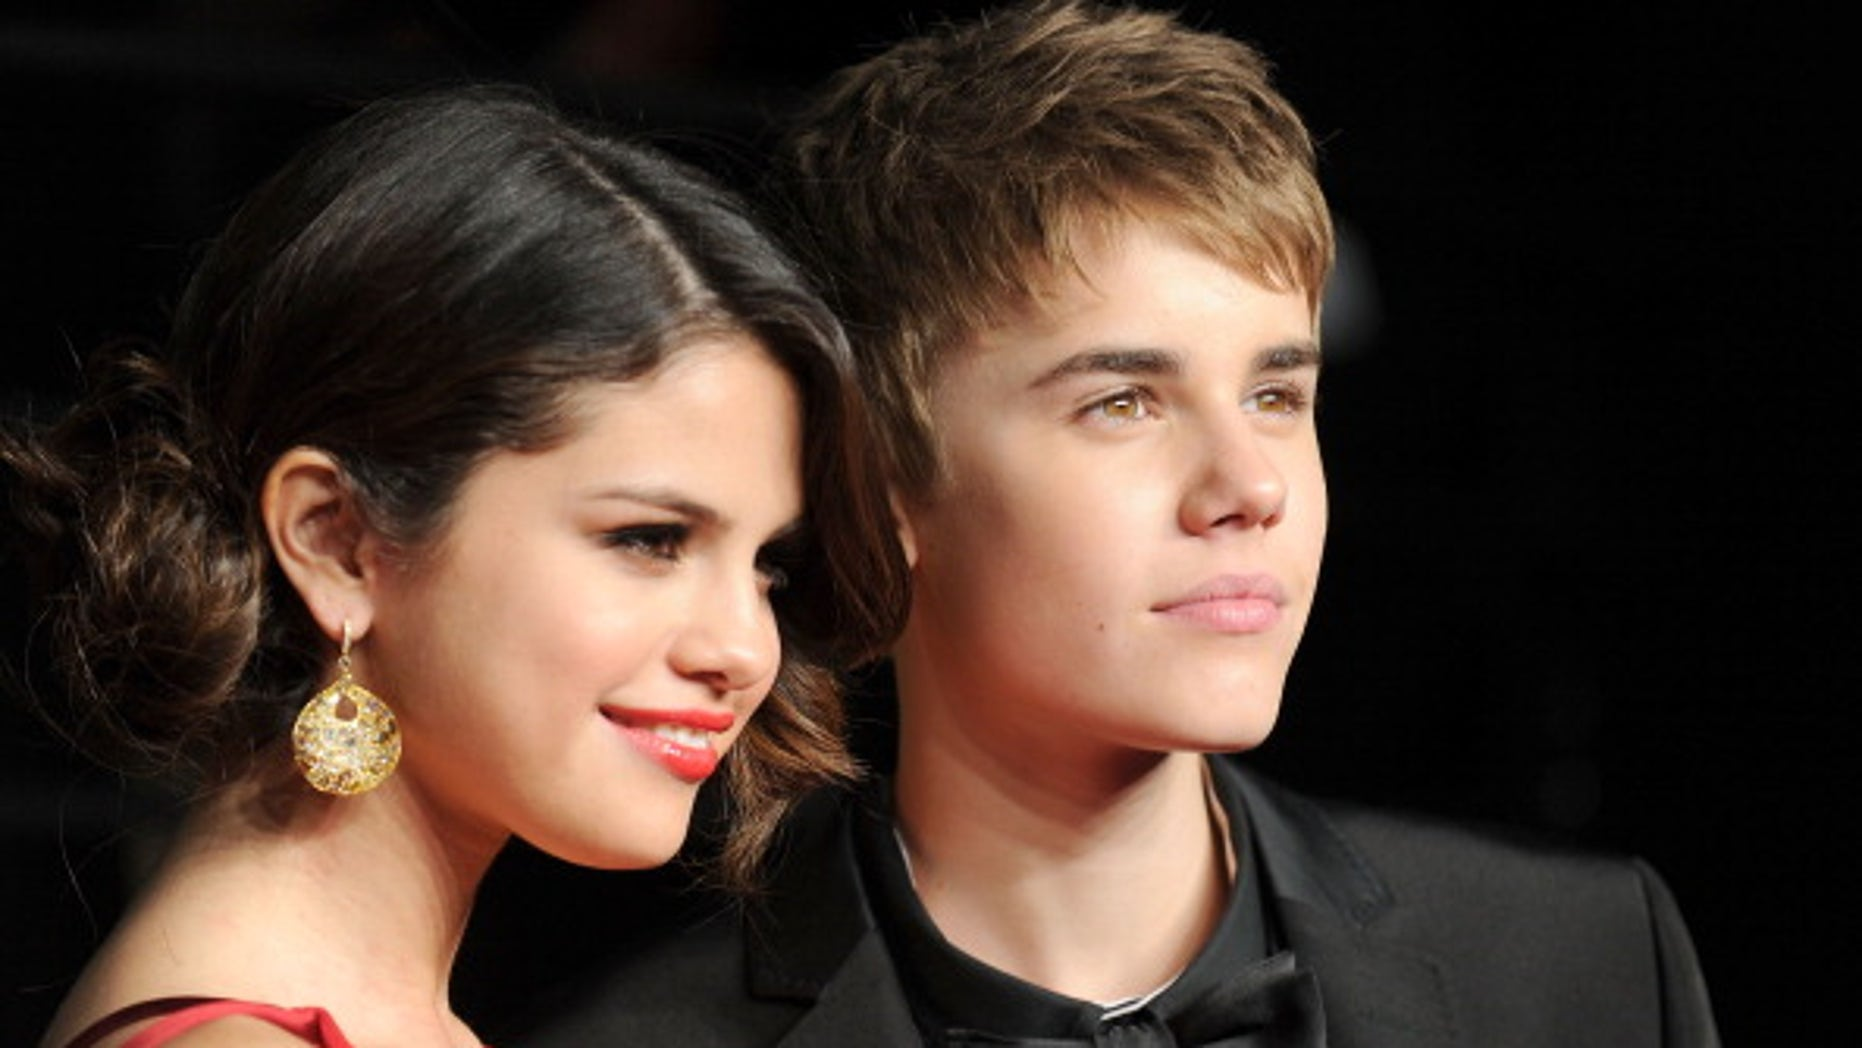 WEST HOLLYWOOD, CA - FEBRUARY 27:  Singer/actress Selena Gomez and singerJustin Bieber arrive at the Vanity Fair Oscar party hosted by Graydon Carter held at Sunset Tower on February 27, 2011 in West Hollywood, California.  (Photo by Pascal Le Segretain/Getty Images)